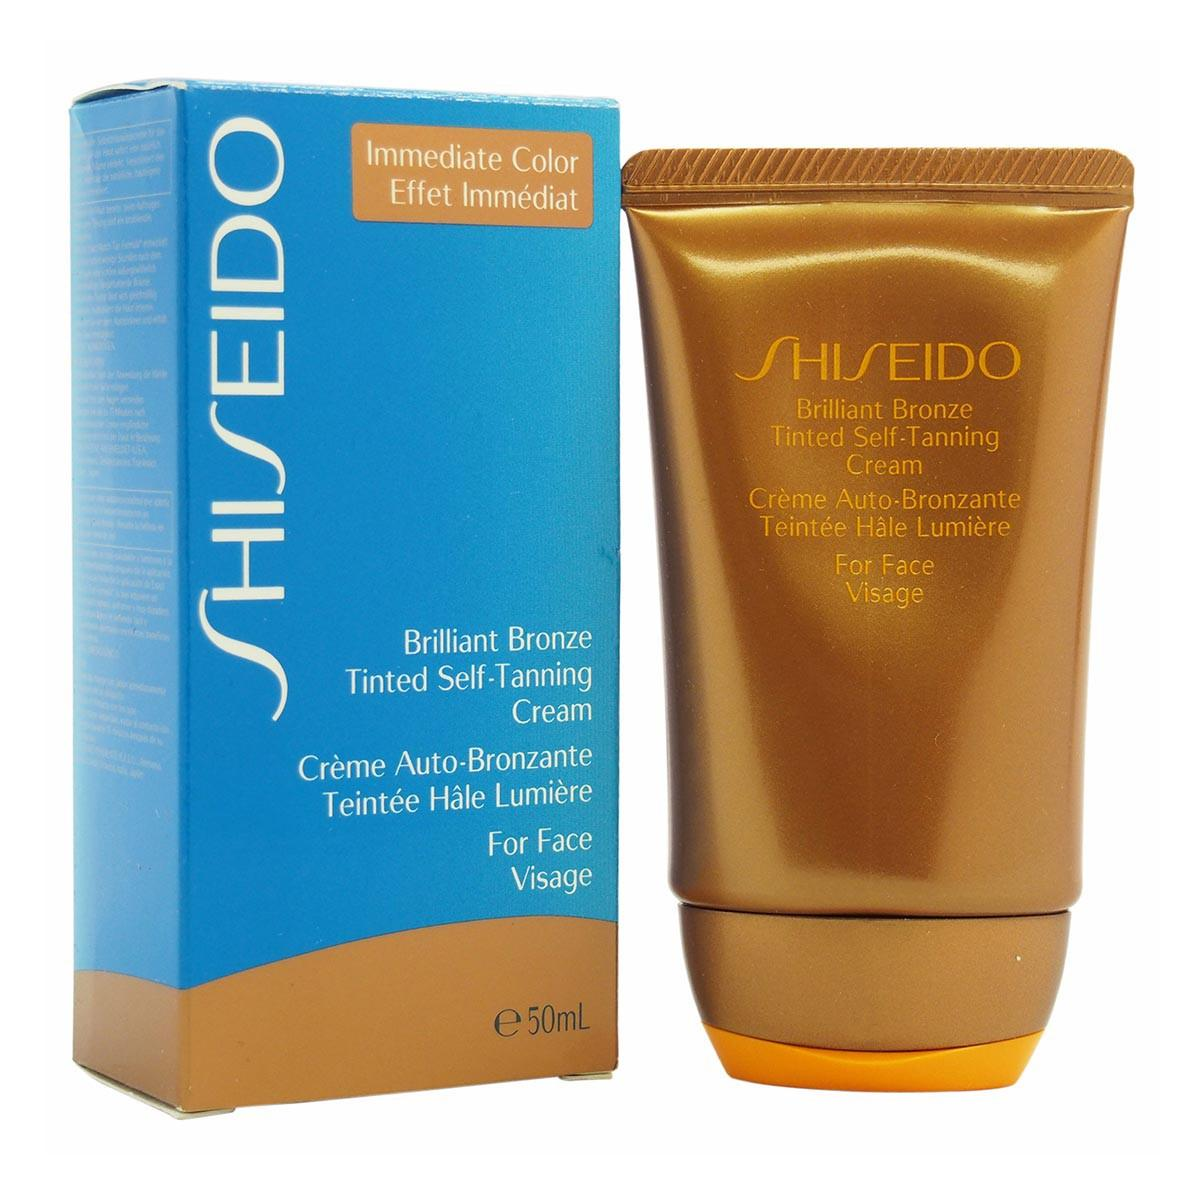 Shiseido Inmediate Color Brilliant Bronze Tinted Self Tanning Cream For Face 50 ml